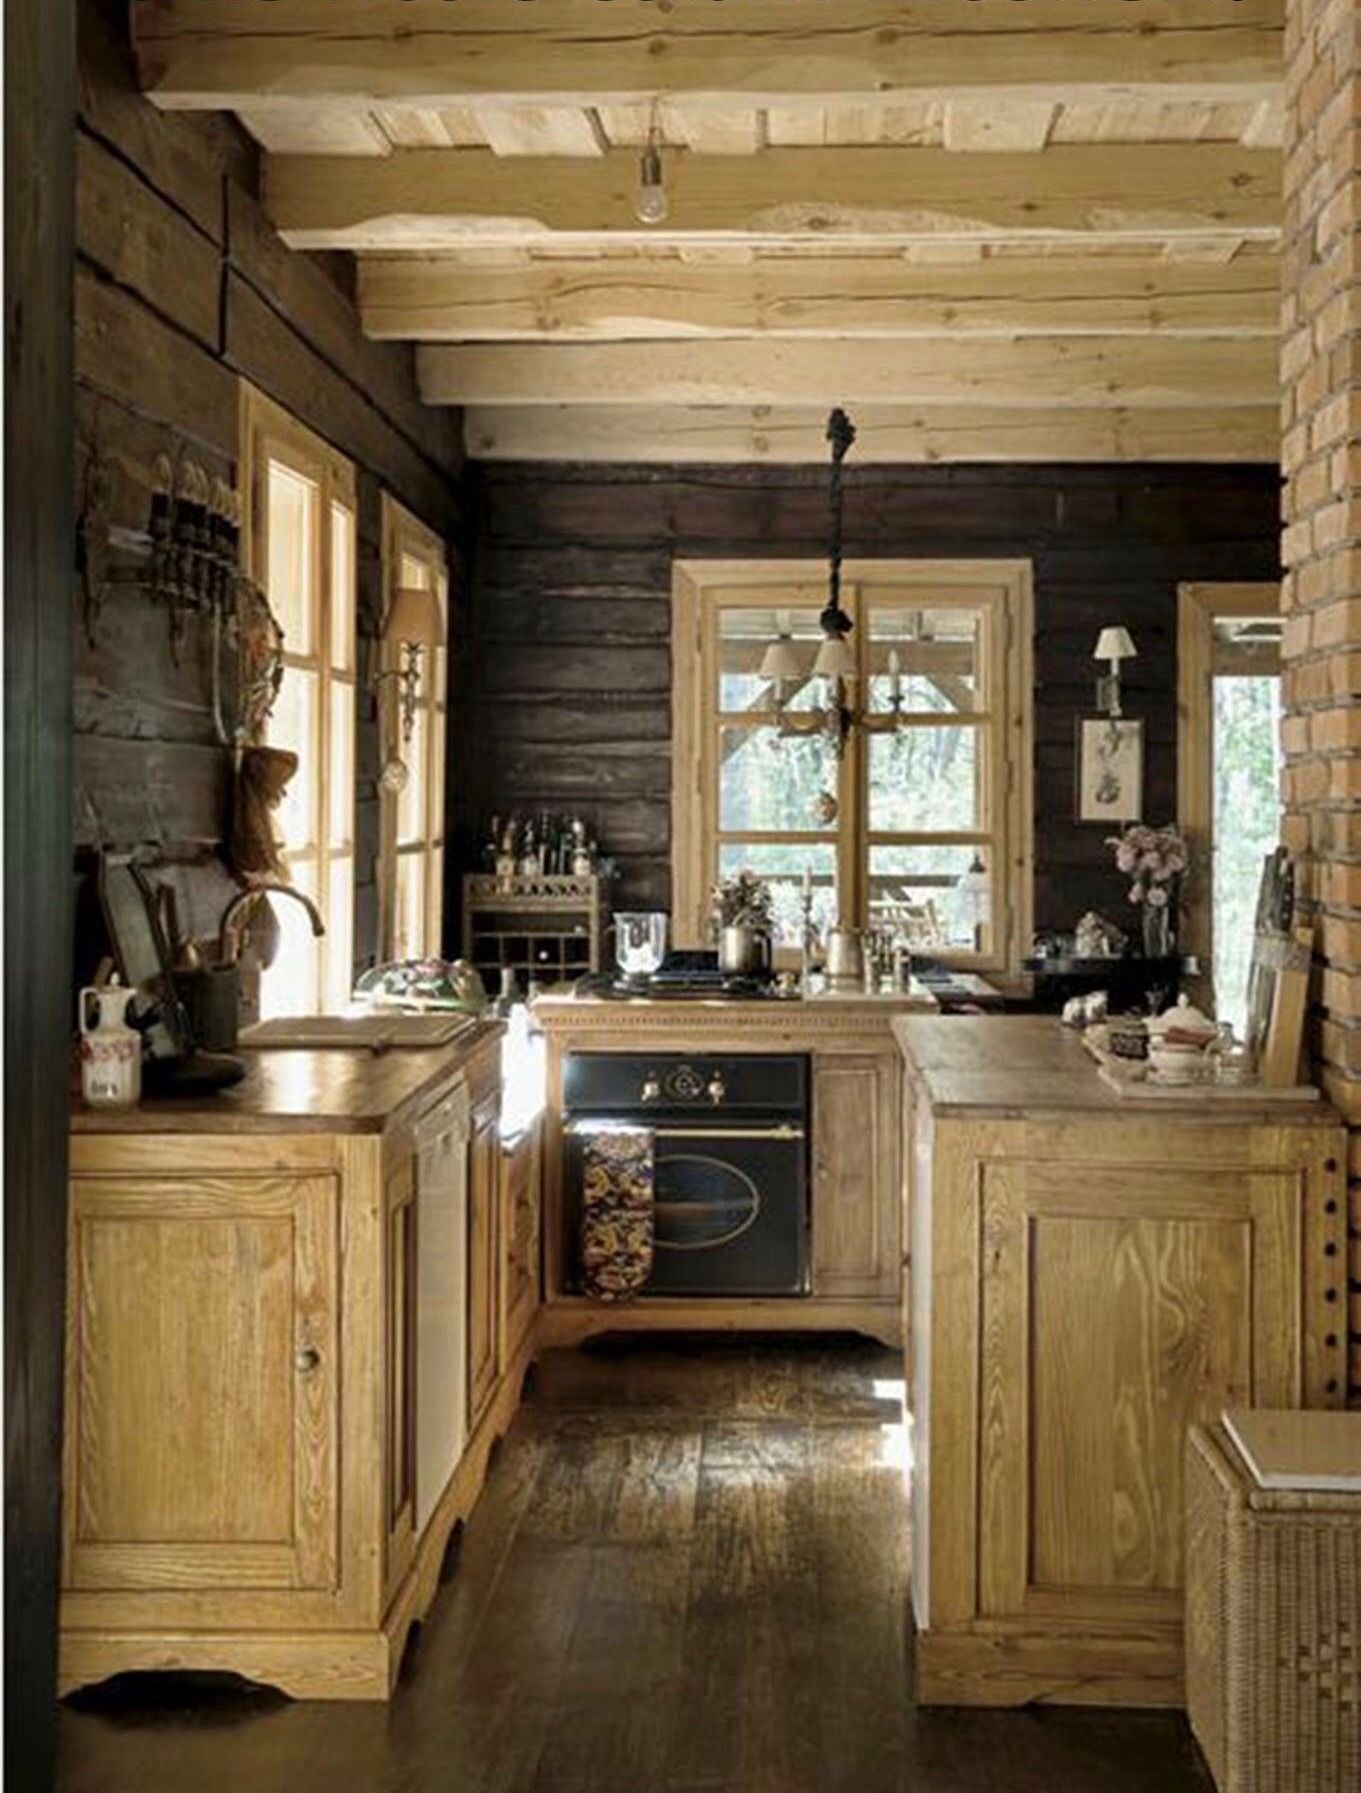 I Think Maybe Some People Want To Pick The Kitchen Cabinets Farmhouse Style And Also Want So Cuisines De Cabine En Rondins Cuisines De Cabine Maison En Rondins